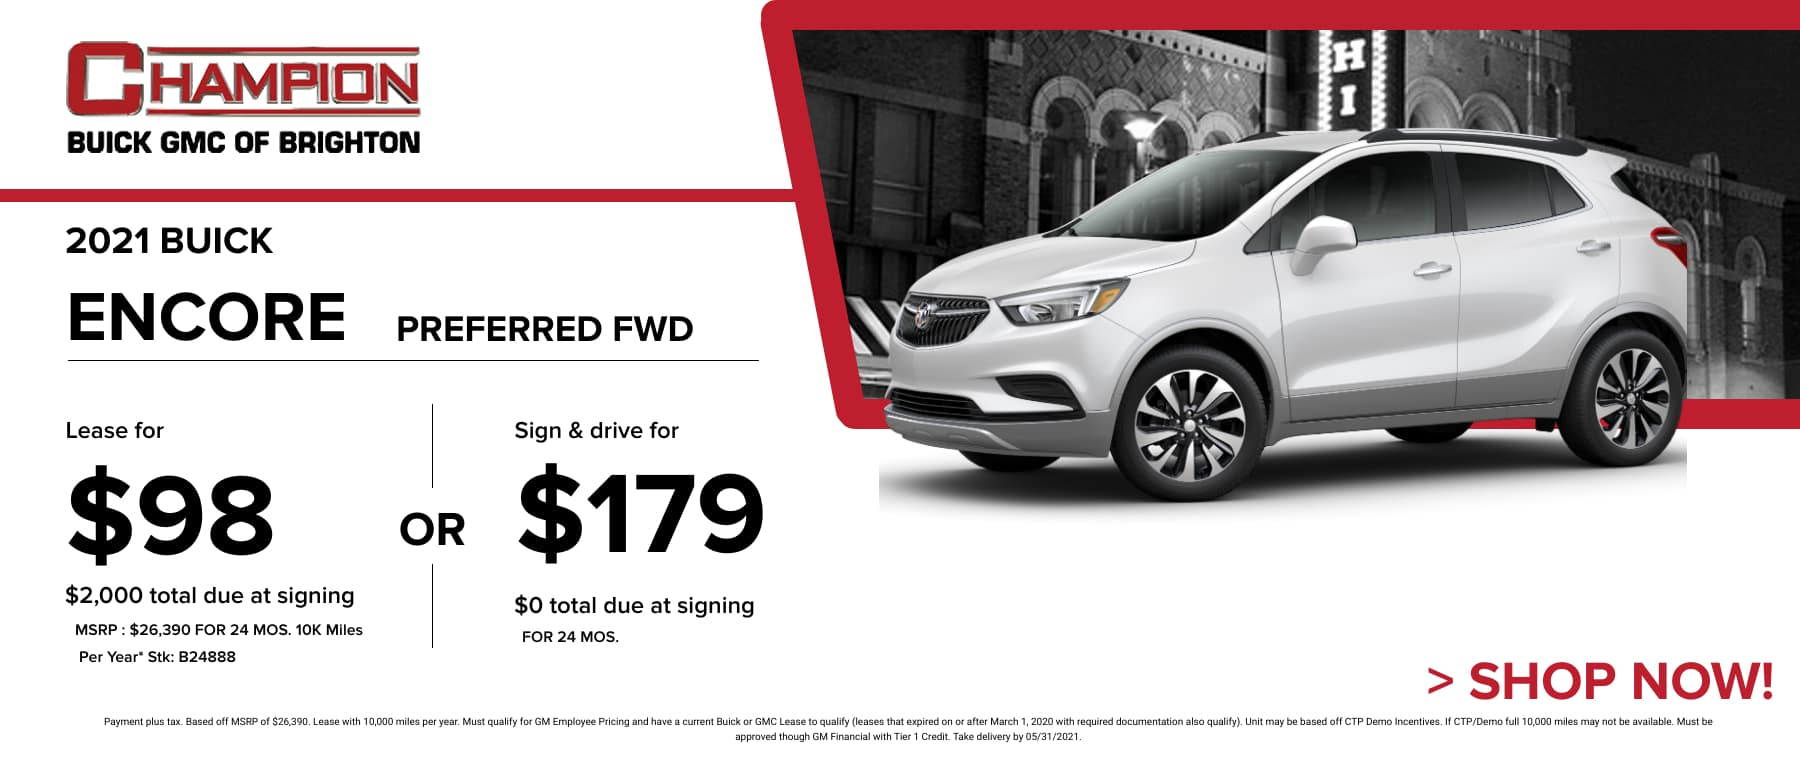 2021 Buick Encore Preferred FWD- Lease for just: $98 per month for 24 months $2,000 total due at signing. Sign & Drive for $179 per month for 24 months. *Stock #B24888. MSRP: $26,390